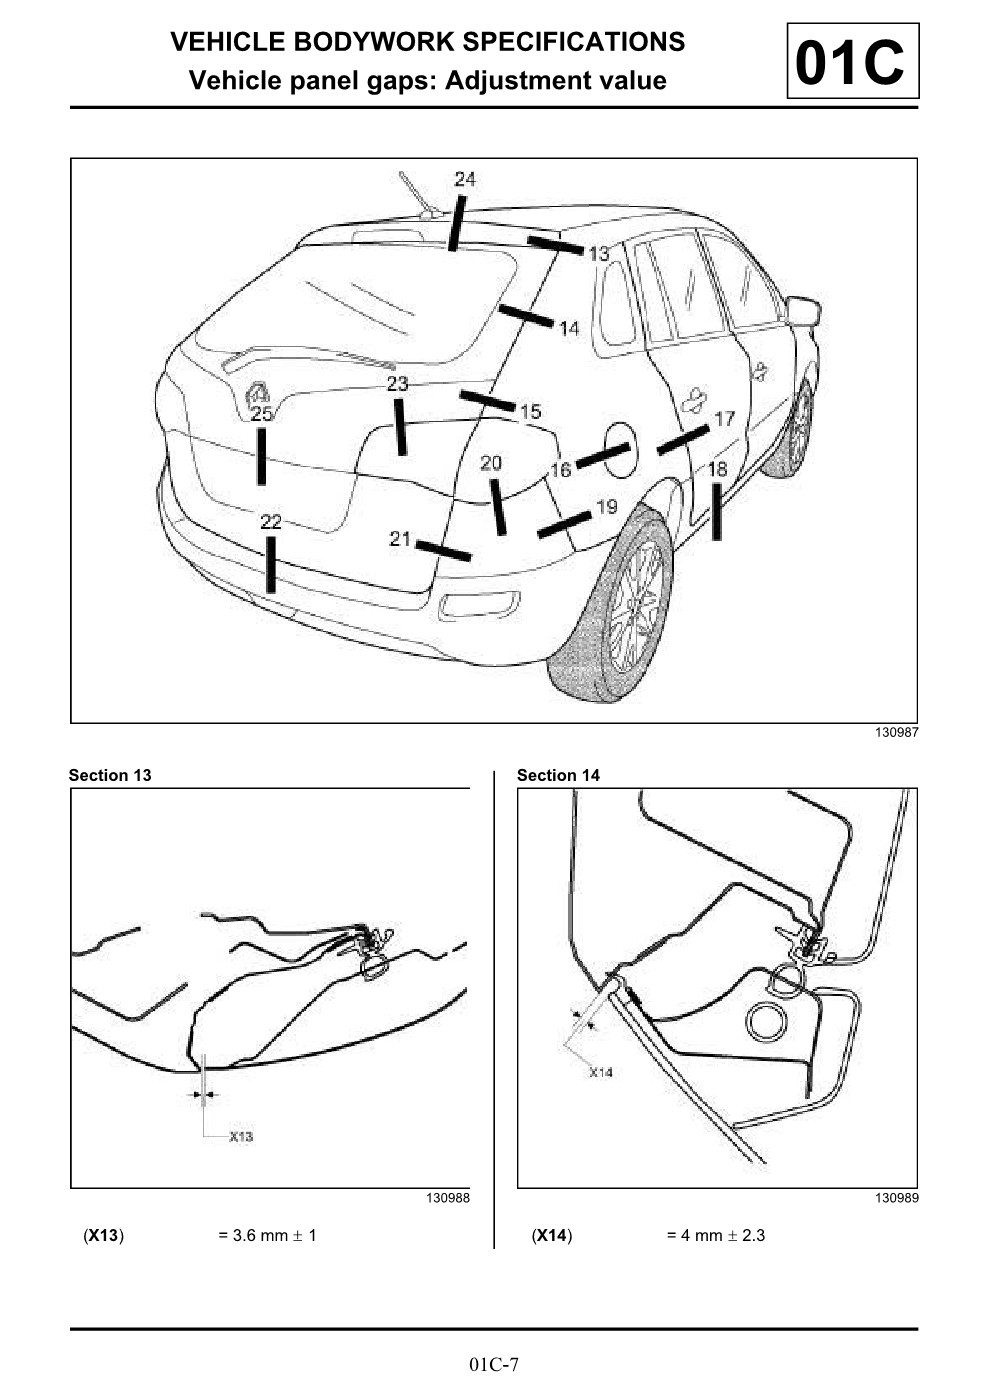 01C_VEHICLE BODYWORK SPECIFICATIONS- KOLRM2S21_Page_9